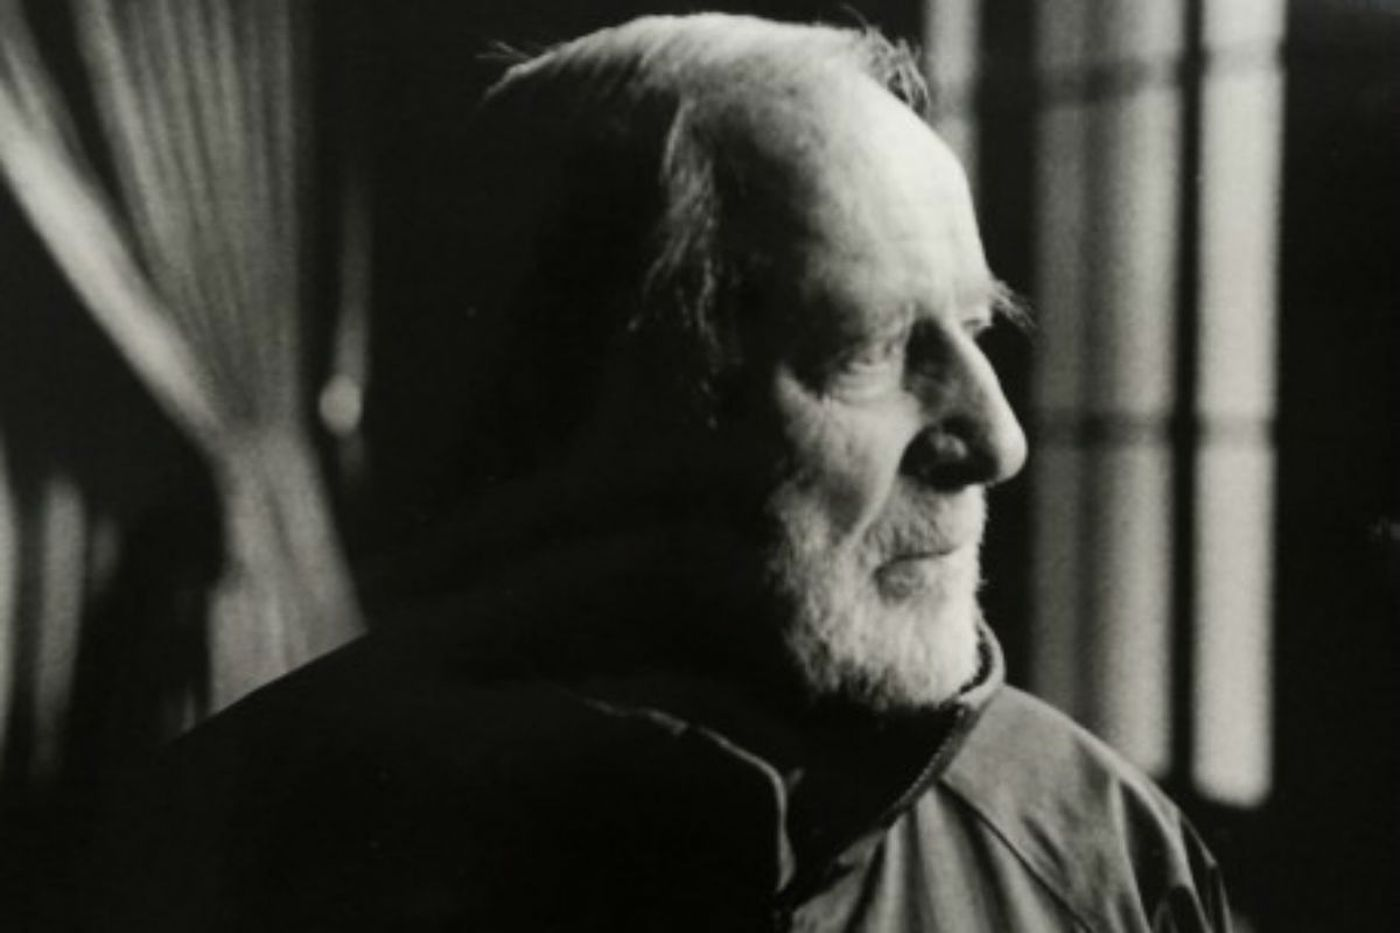 Robert M. Engman, 91, creator of sculptures great and small